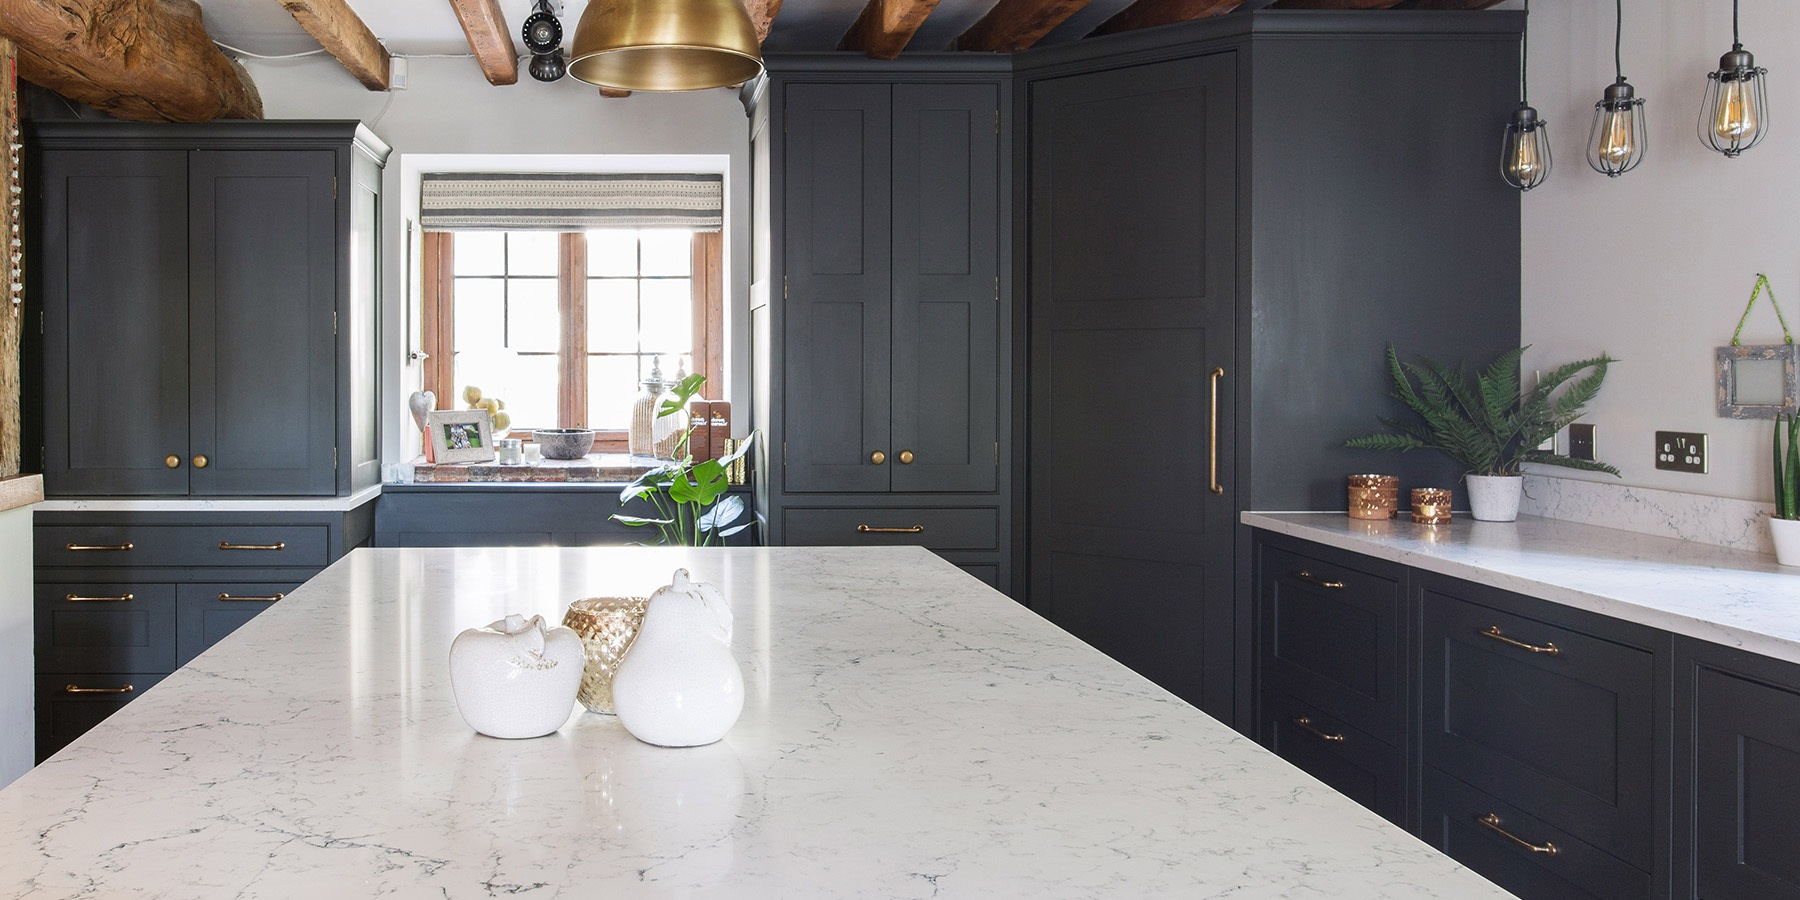 Industrial Style Shaker Kitchen - Handmade shaker kitchen cabinets with large kitchen larder and central kitchen island, with beautiful white worktops and brass handles.